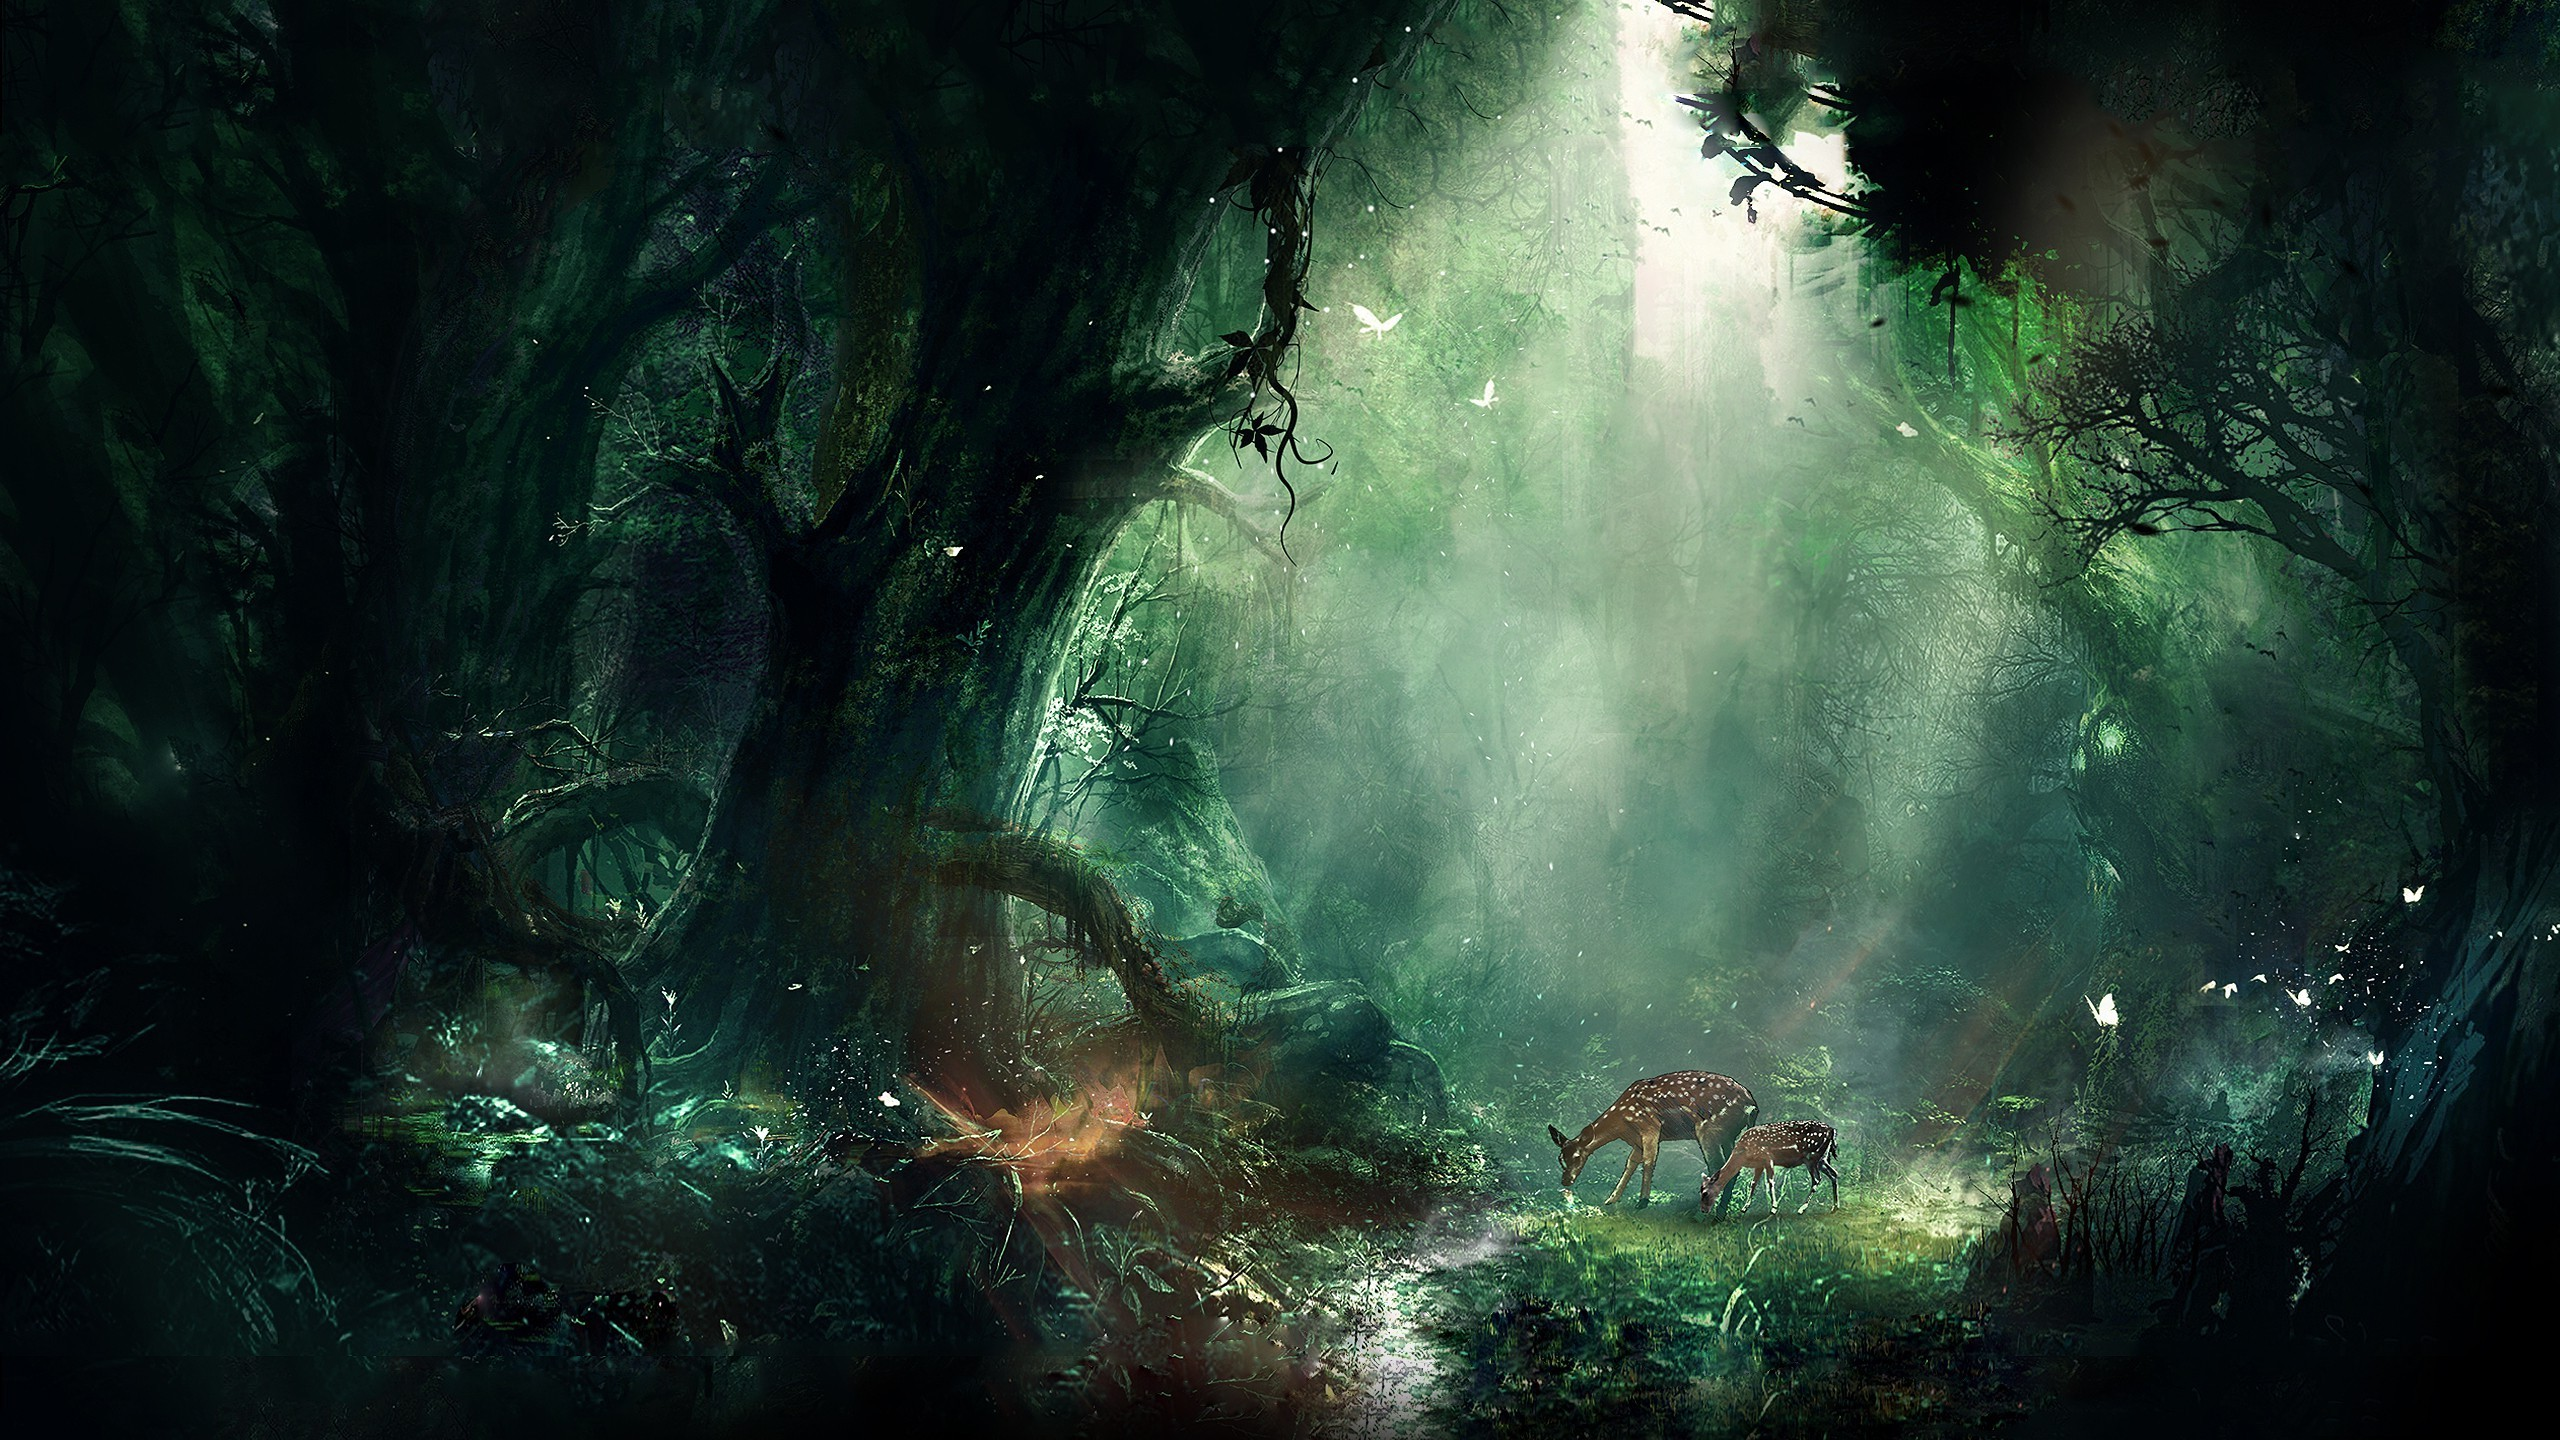 2560x1440 artwork, Digital Art, Fantasy Art, Deer, Forest, Nature Wallpapers HD /  Desktop and Mobile Backgrounds